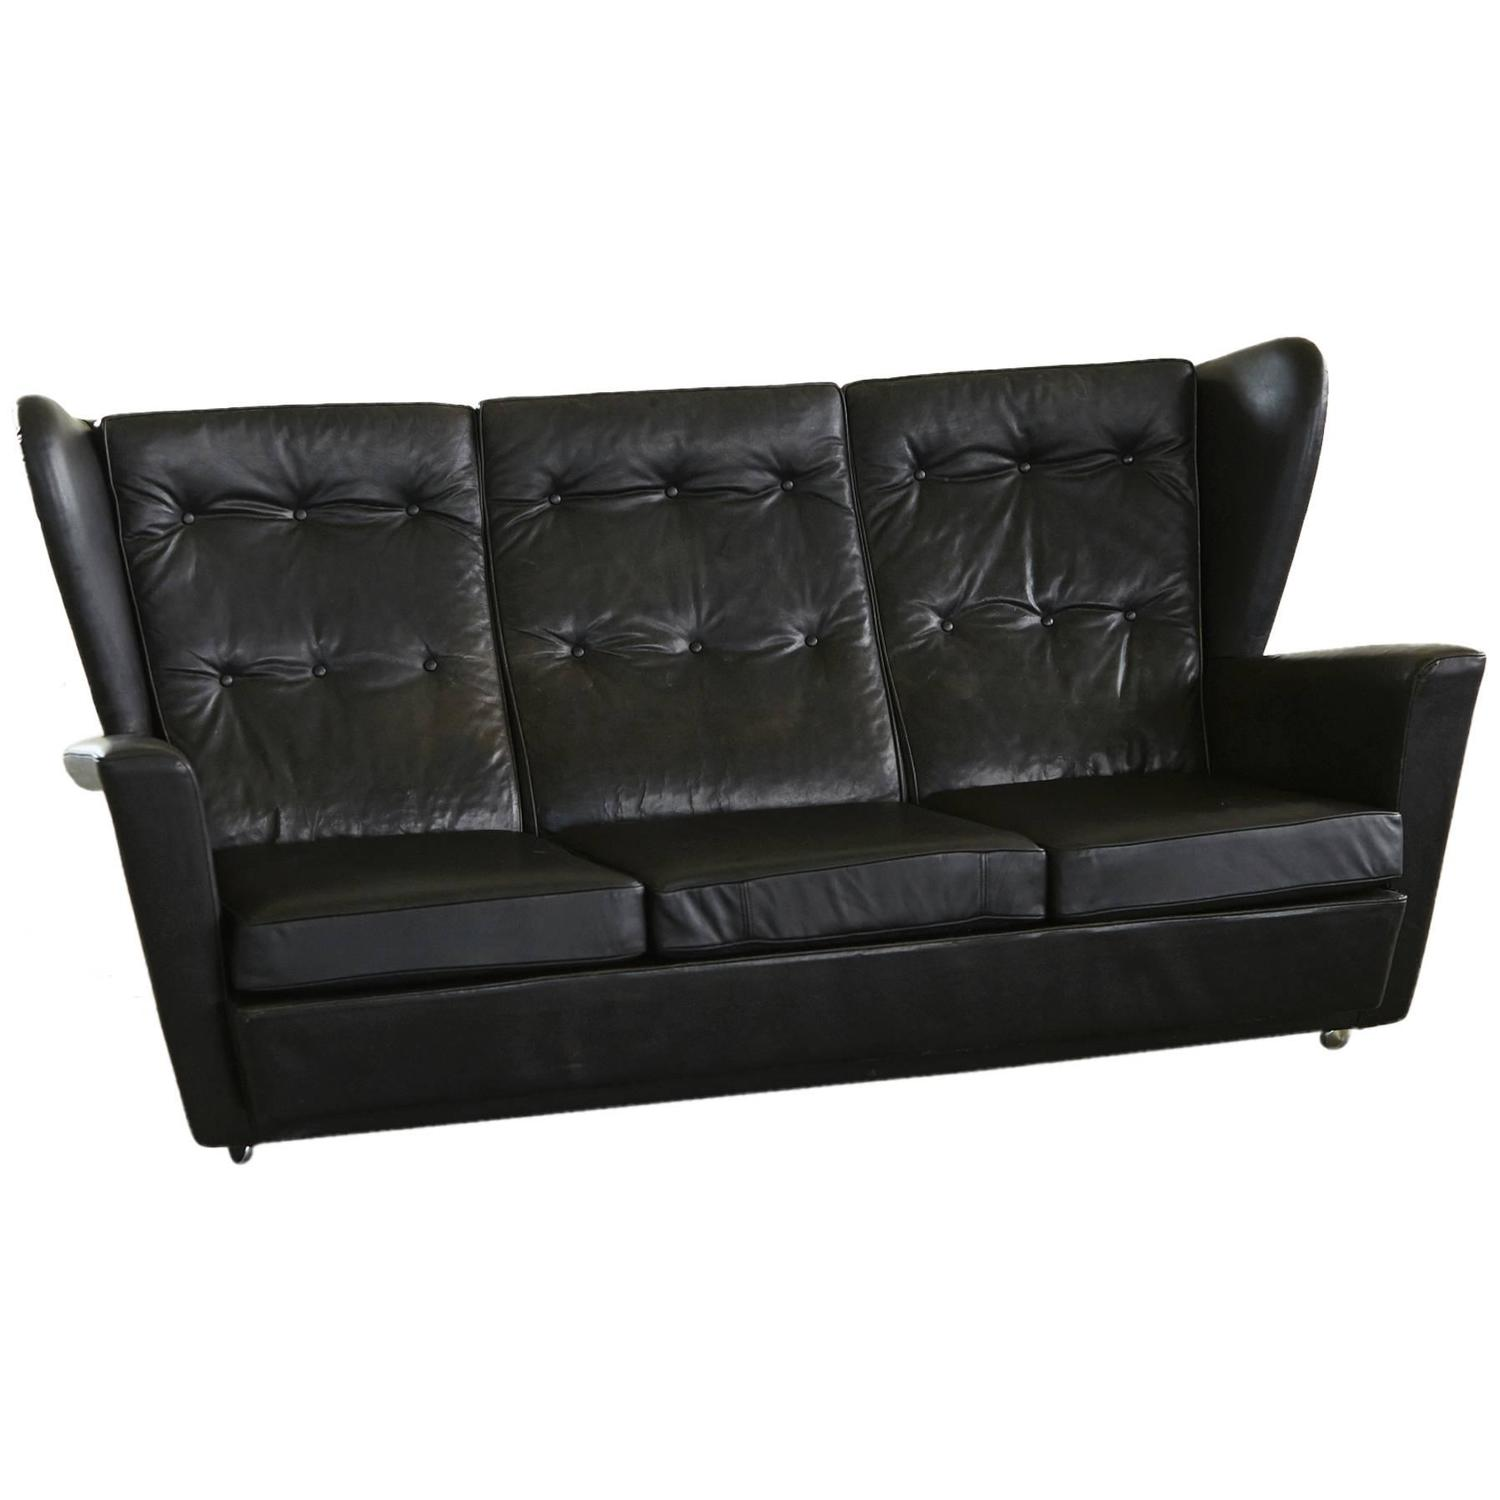 Howard Keith Black Leather Wingback Sofa Very Rock N 39 Roll At 1stdibs